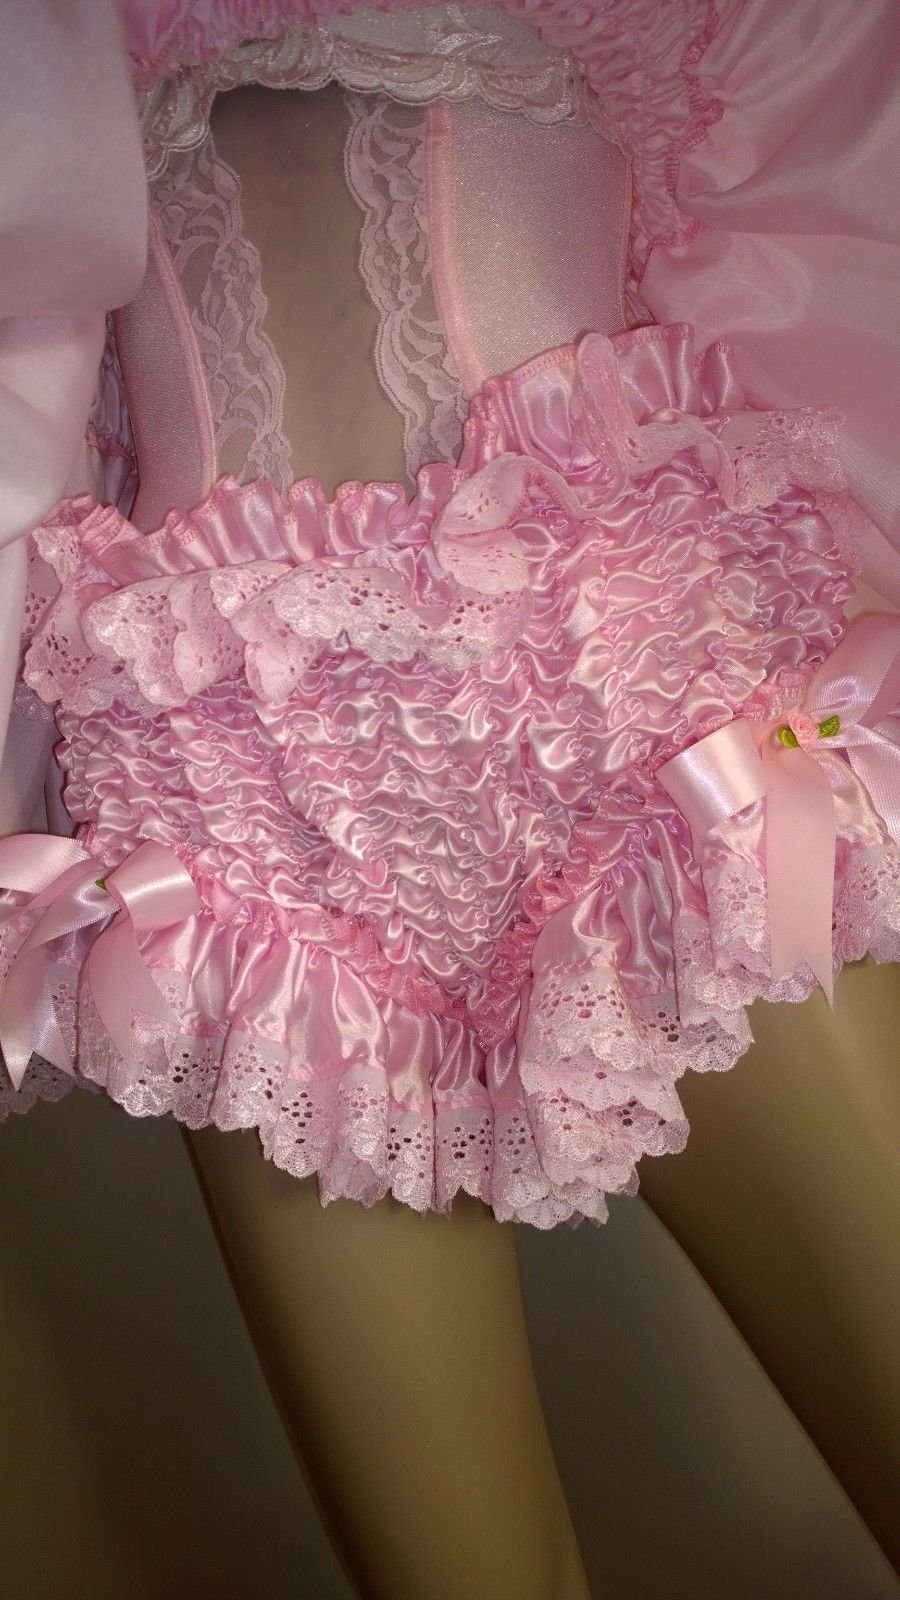 Frilly Sissy Tumblr intended for prissy sissy maid adult baby cdtv lolita mincing babydoll pink